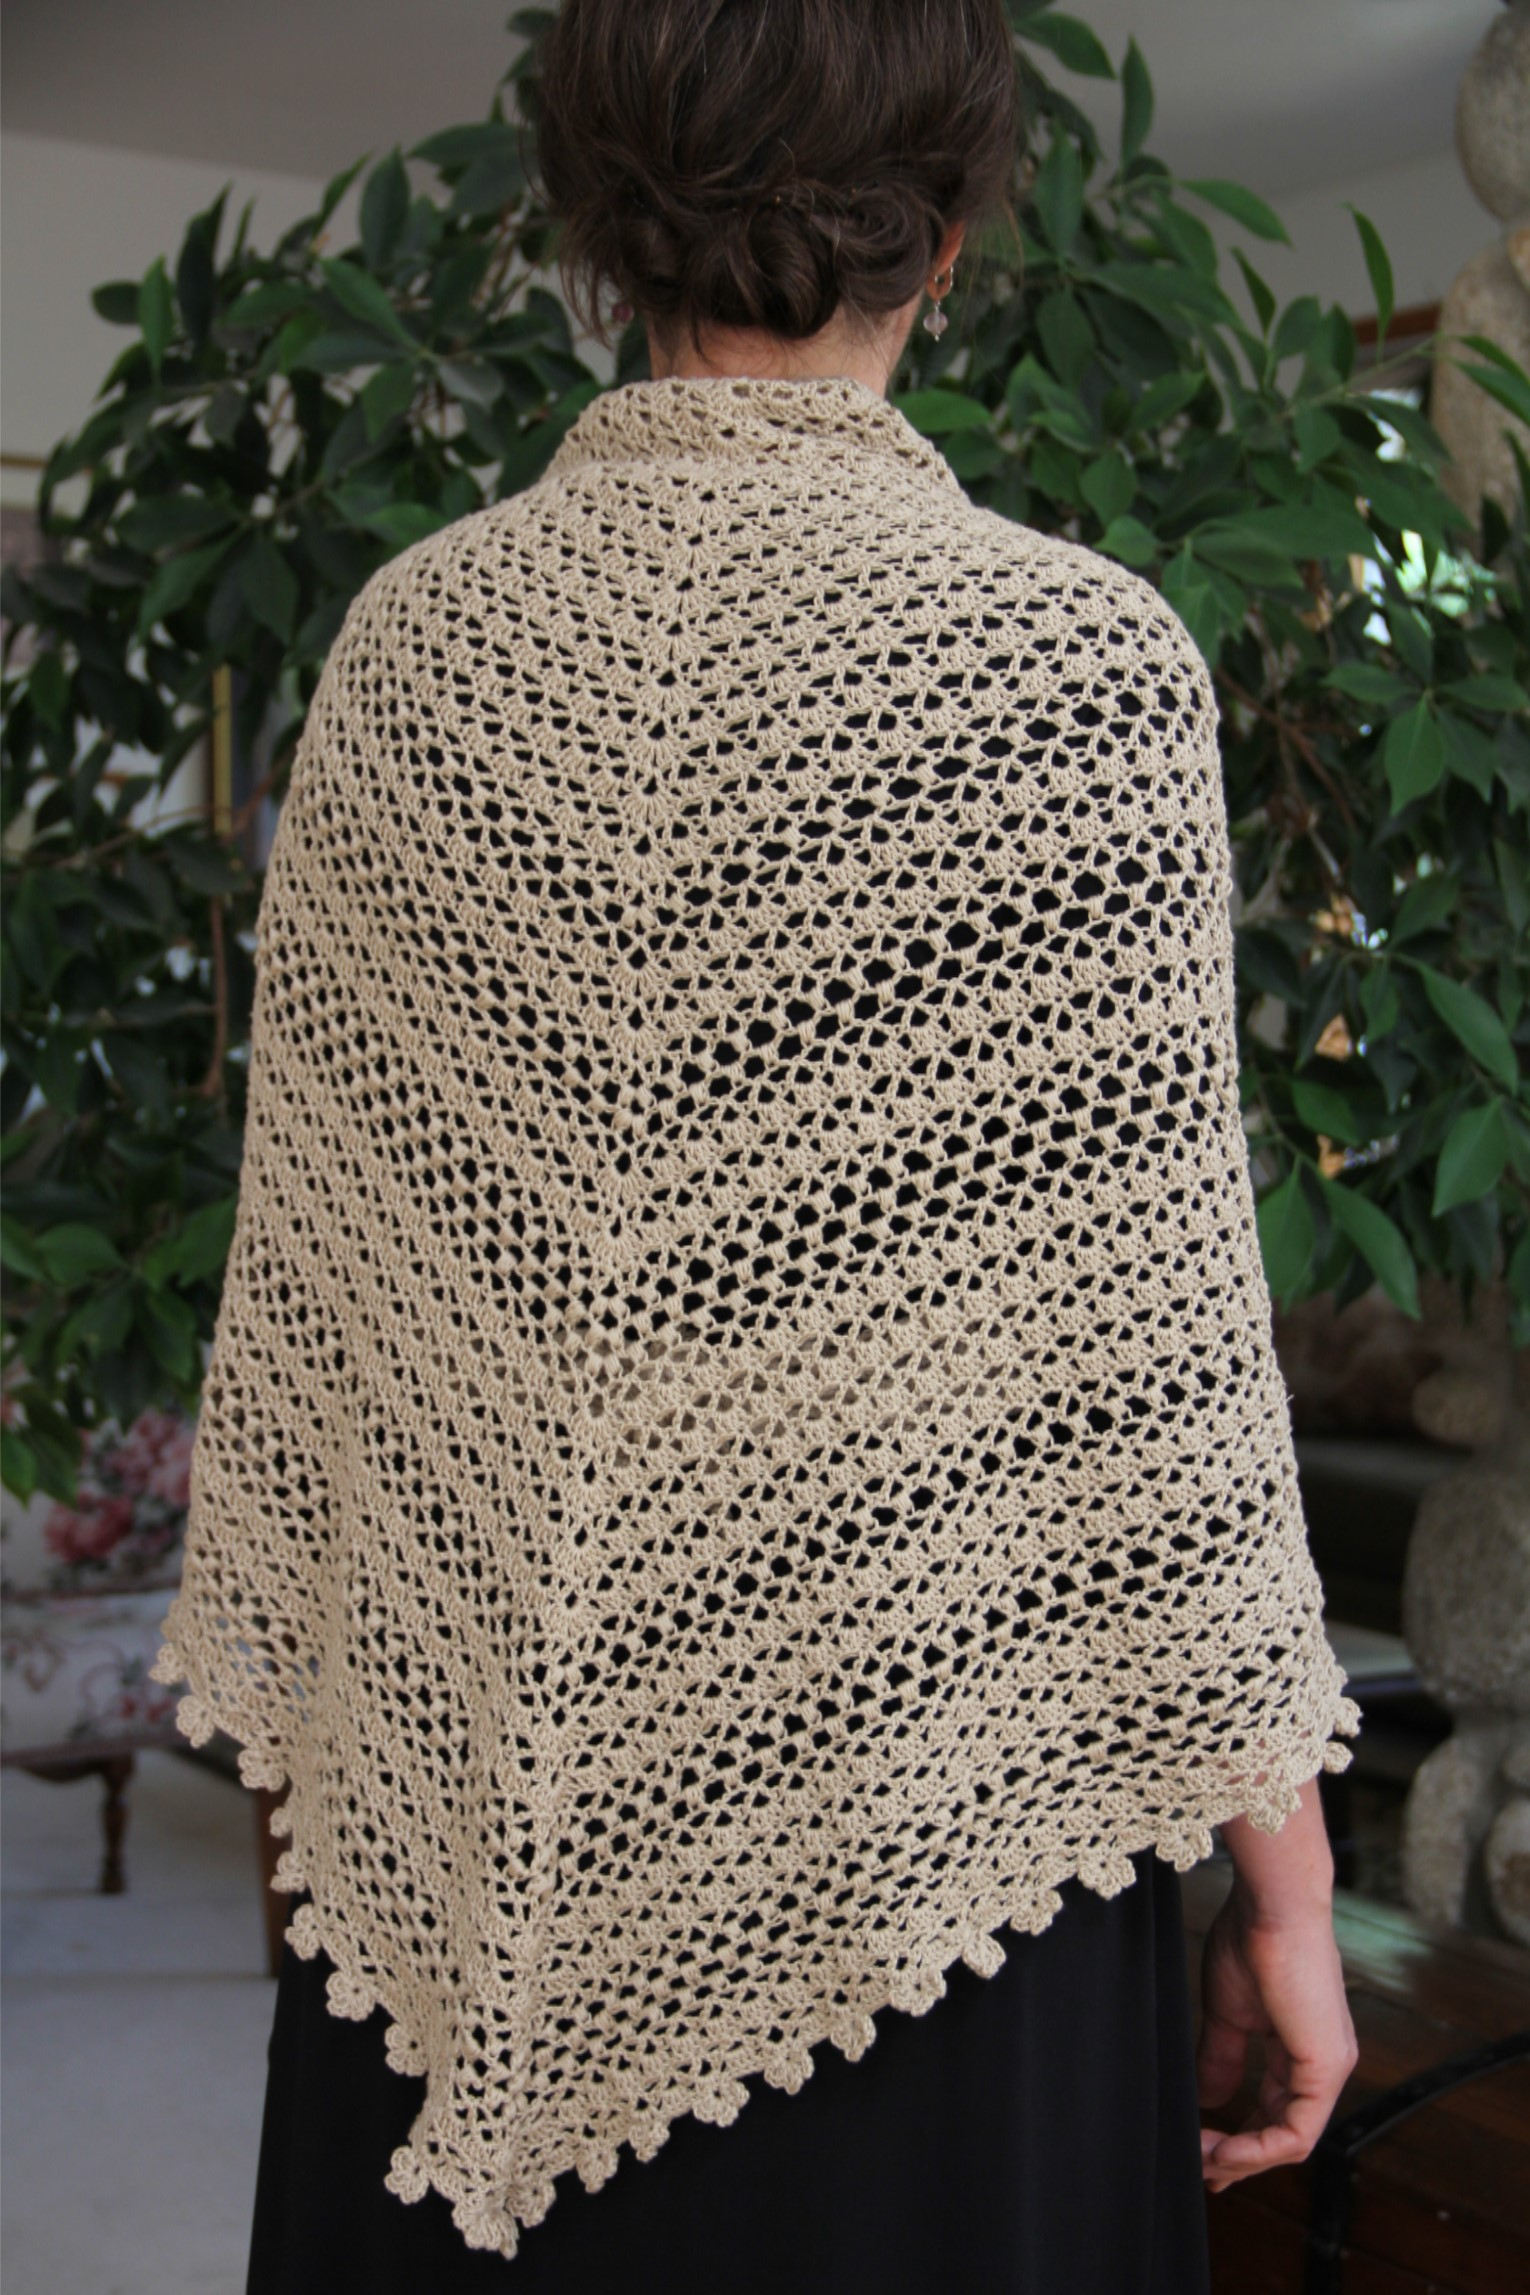 Crochet Patterns For Shawls : Free Crochet Shawl Pattern Worked In A Basic Trellis Pattern Pictures ...